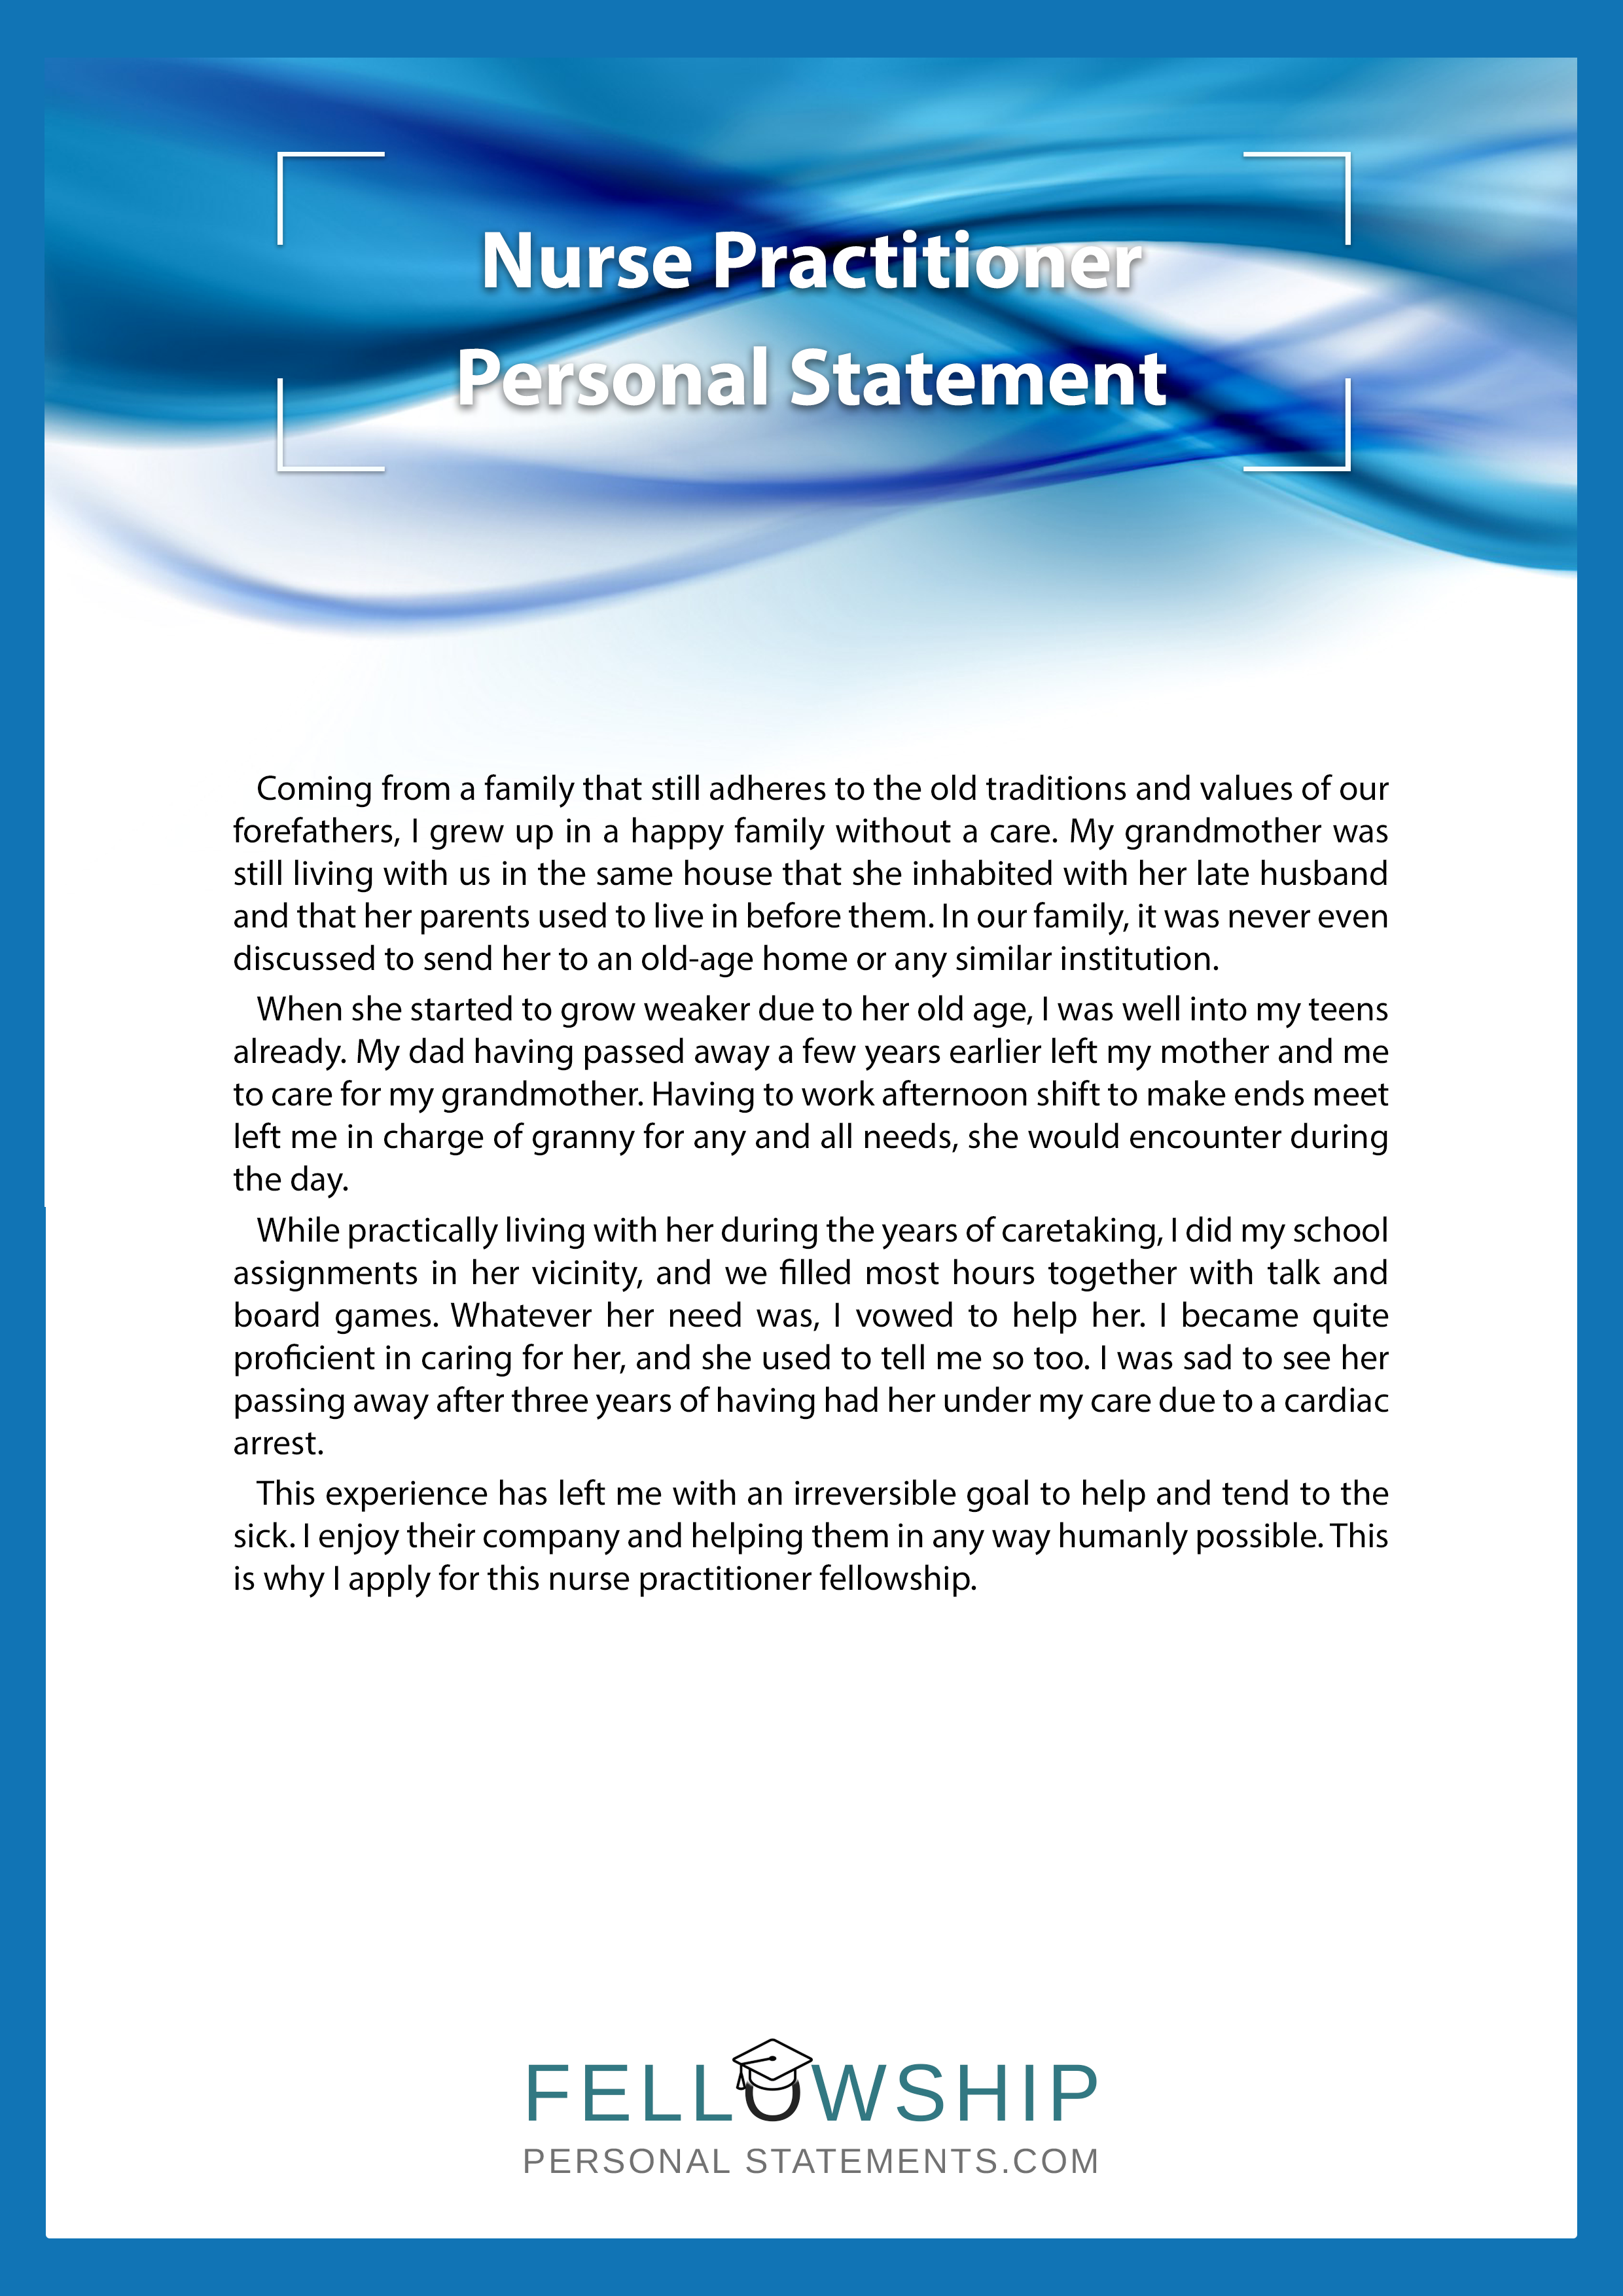 Nurse Practitioner Personal Statement Sample That Will Provide You With Details You Need To Kno Personal Statement Medical School Motivation Nurse Practitioner